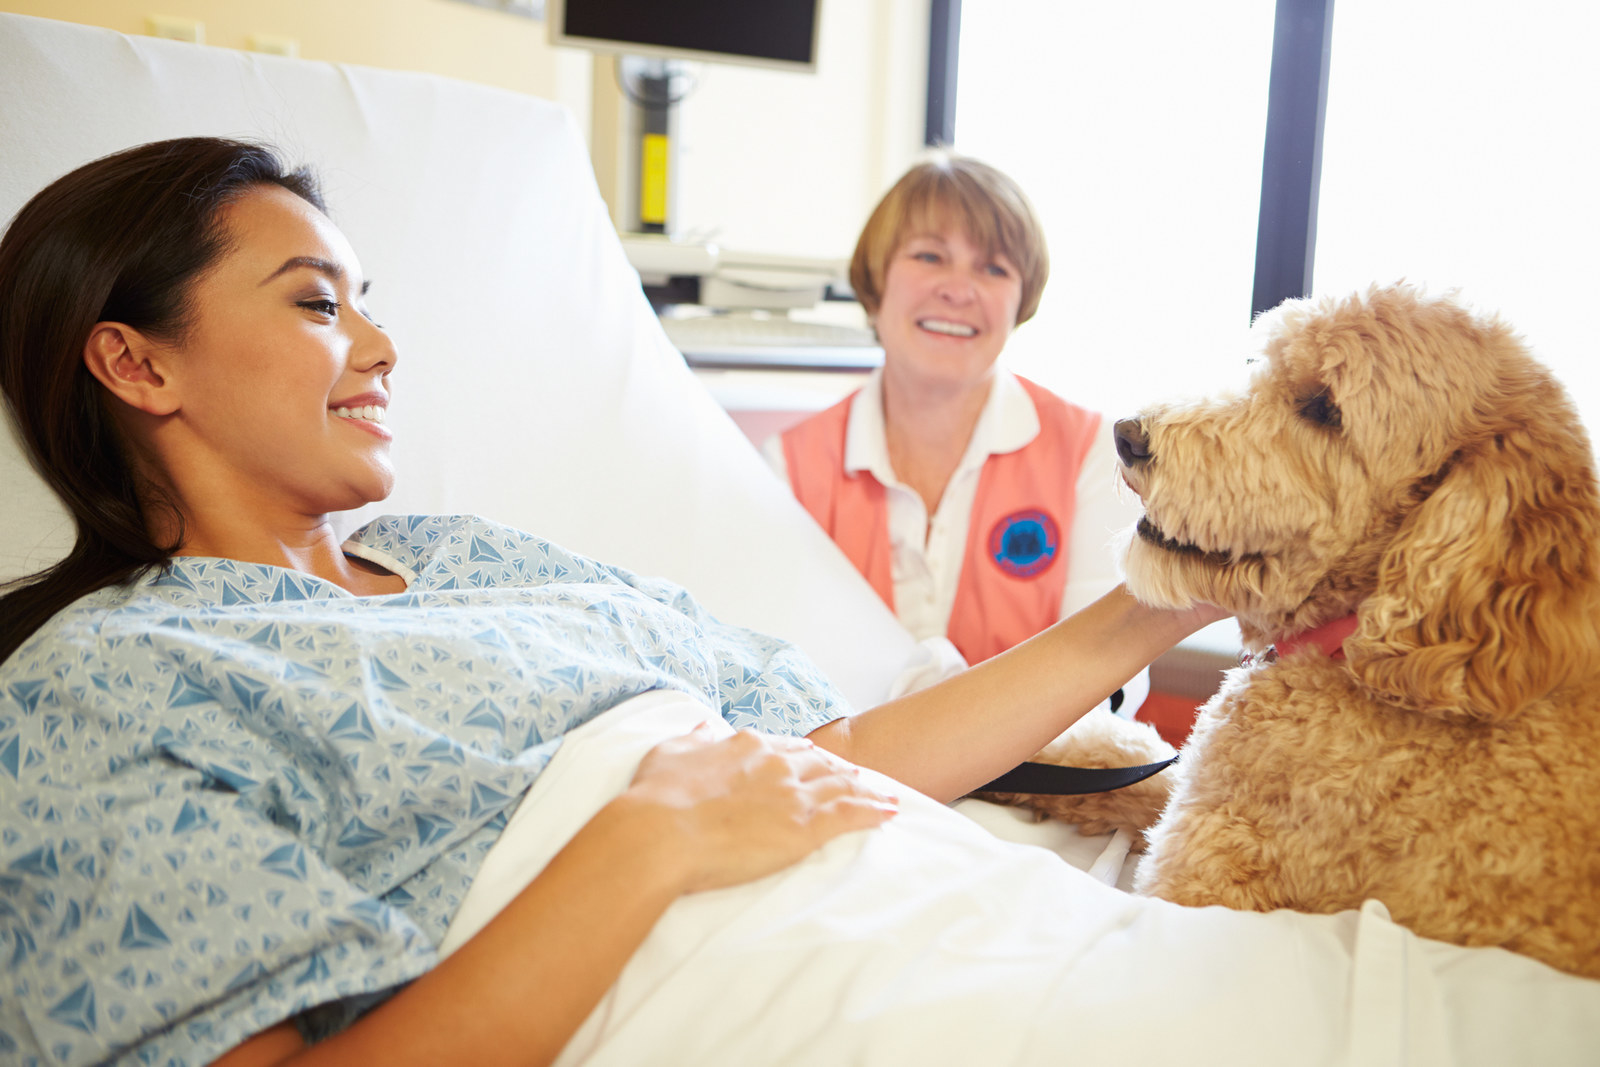 Whether you're managing chronic pain, recovering from surgery, or receiving physical therapy, pets are proven pain management assistants. After observing patients receiving animal-assisted therapy during hospital stays and after physical therapy, researchers concluded that patients perceived lower pain levels and greater satisfaction with their recovery. Further studies found that therapy dog visits during outpatient treatment for chronic pain patients led to a substantial reduction in pain and emotional distress. TBH, what can't pets do?